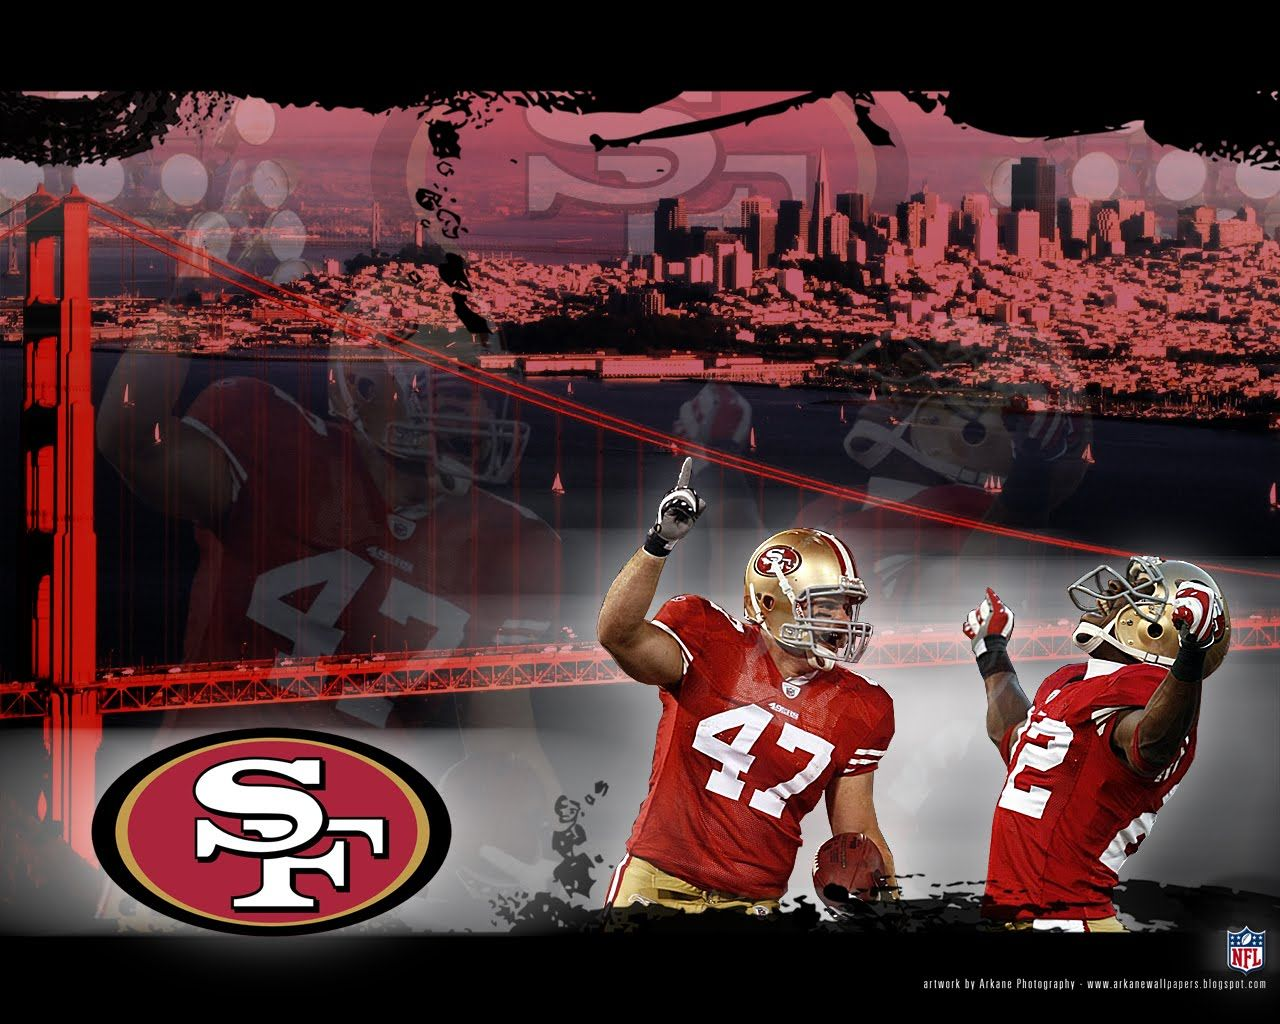 Image detail for 28 San Francisco 49ers Wallpaper C49ers